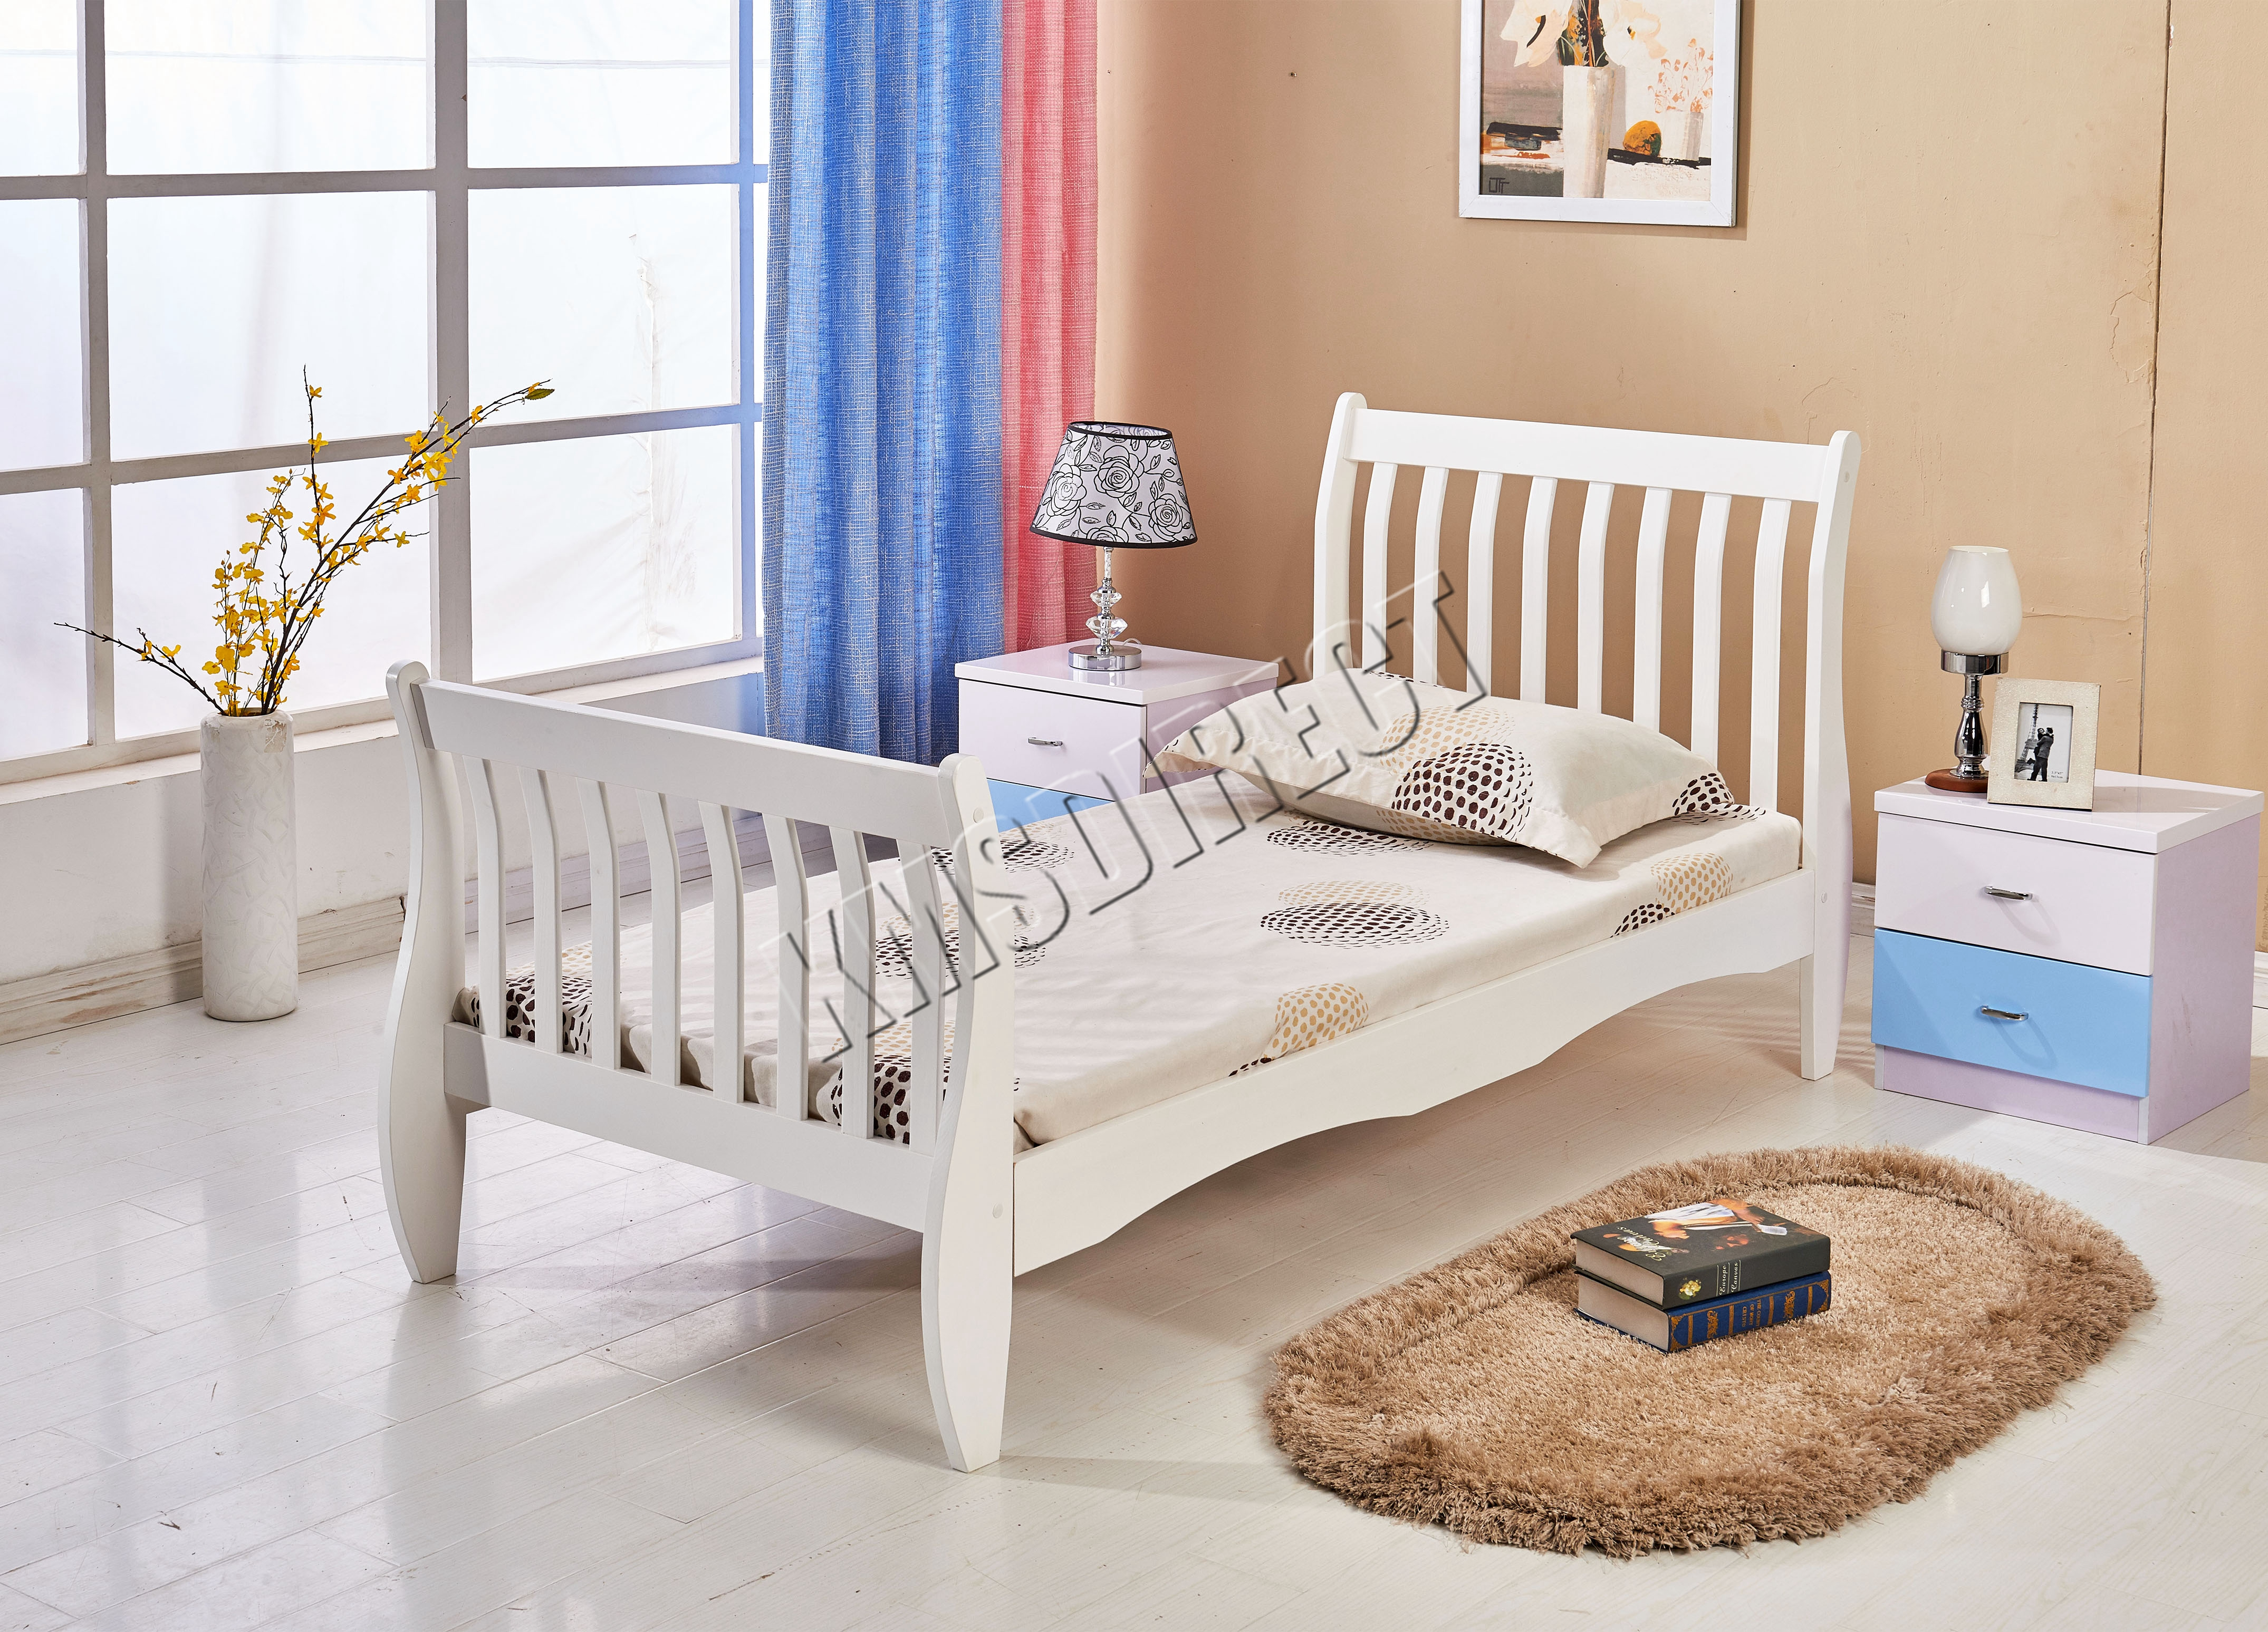 Good Sentinel FoxHunter 3ft Single Wooden Sleigh Bed Frame Pine Bedroom  Furniture White WSB01